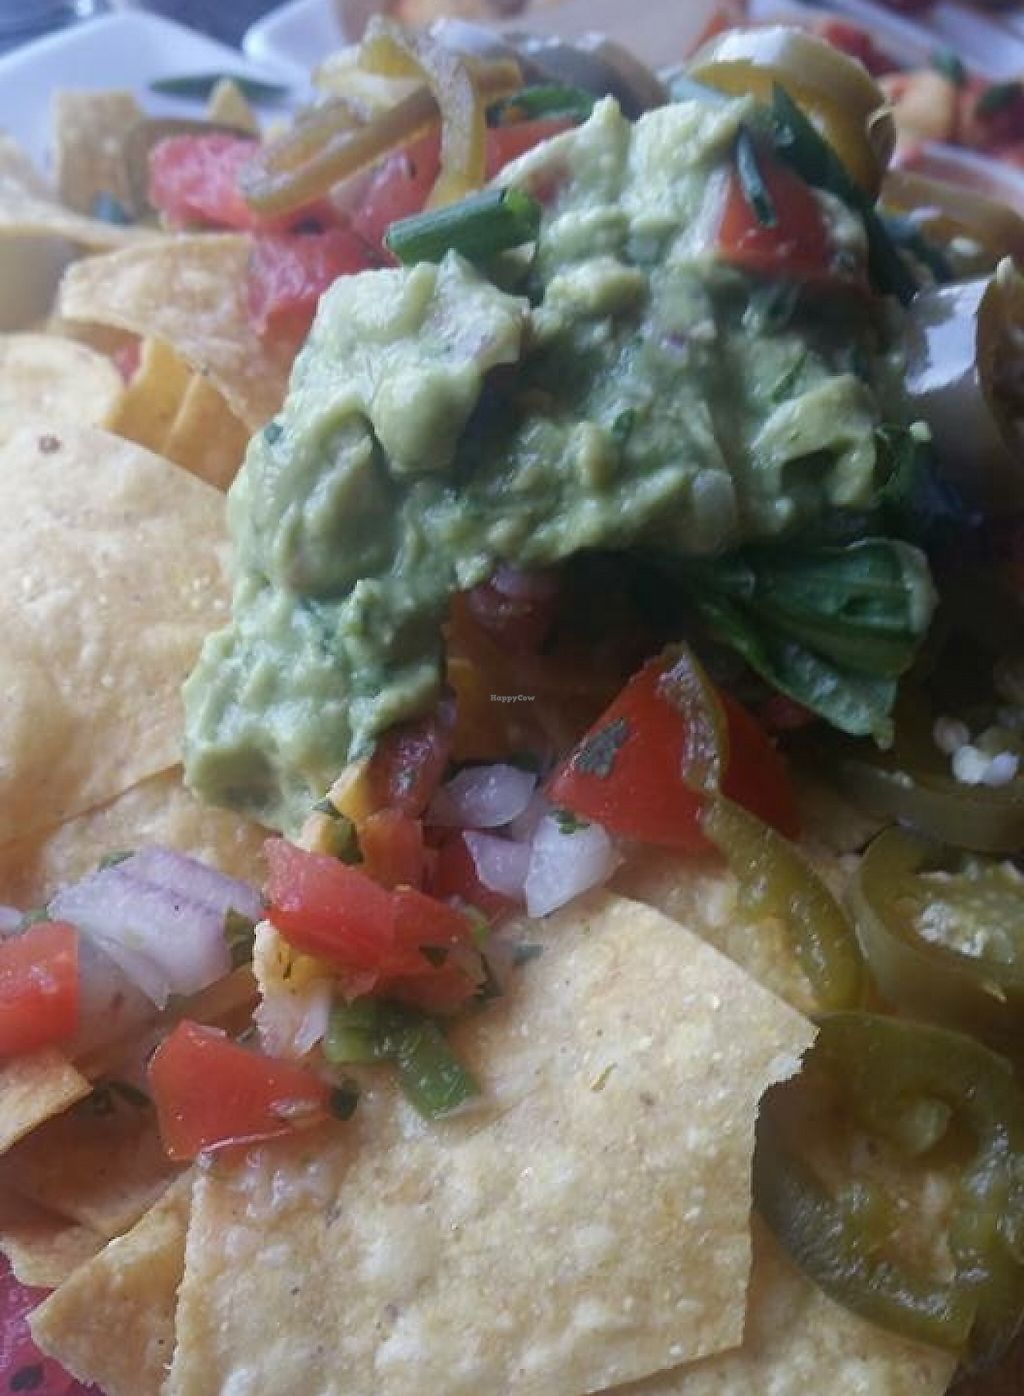 "Photo of Venti's Cafe and Taphouse  by <a href=""/members/profile/Arthousebill"">Arthousebill</a> <br/>Vegan nachos <br/> April 2, 2016  - <a href='/contact/abuse/image/71197/222545'>Report</a>"